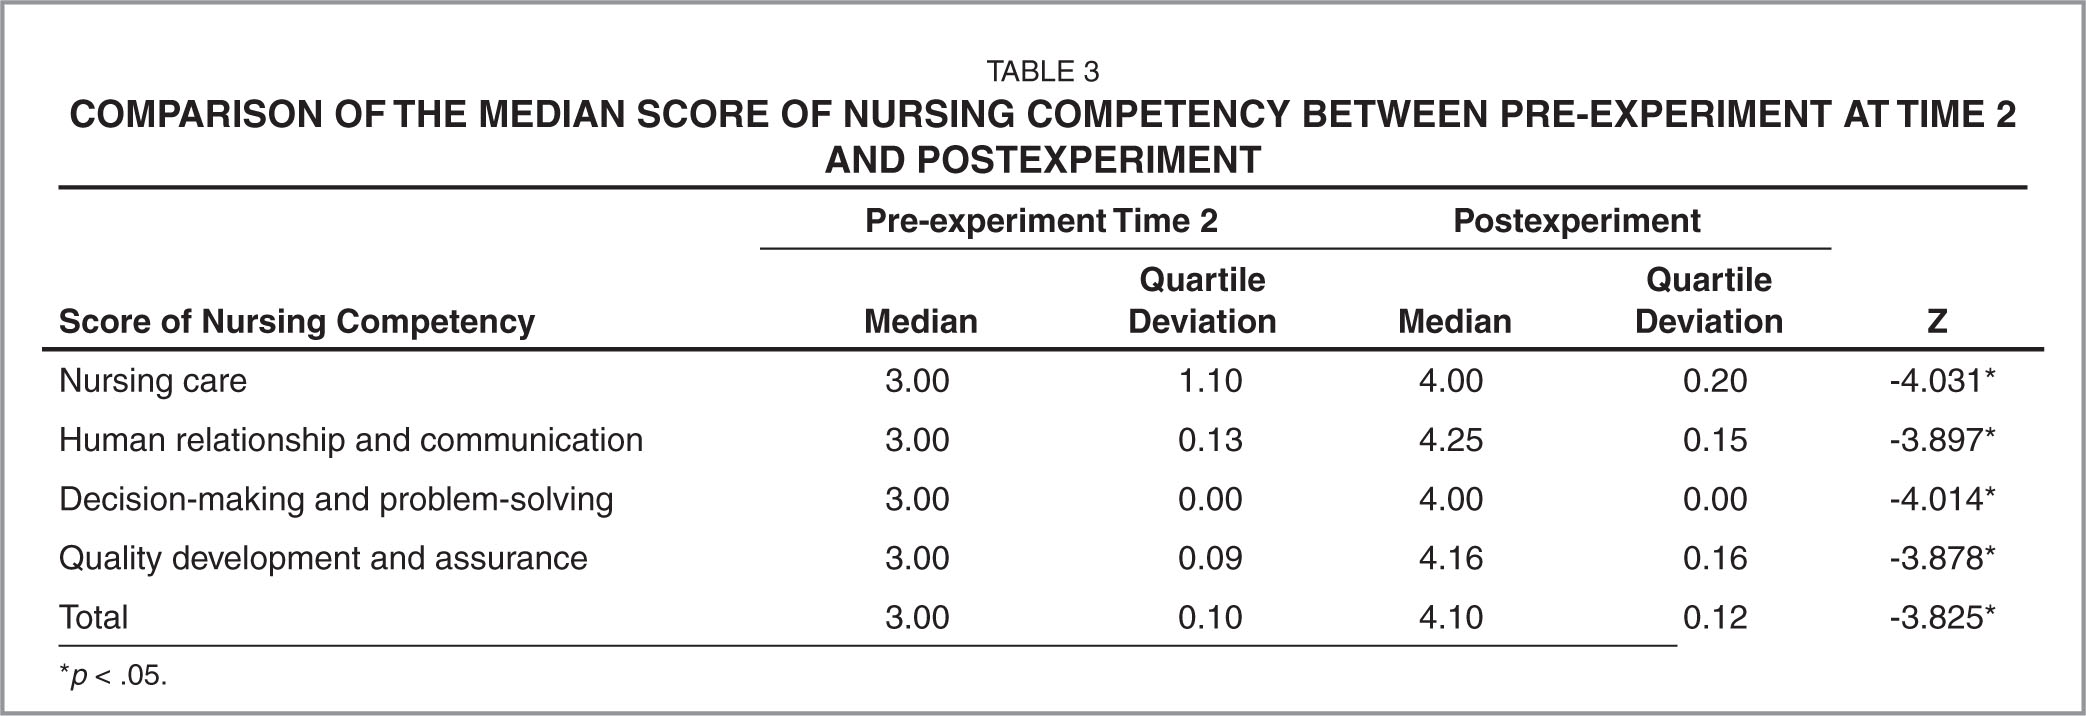 Comparison of the Median Score of Nursing Competency Between Pre-Experiment at Time 2 and Postexperiment